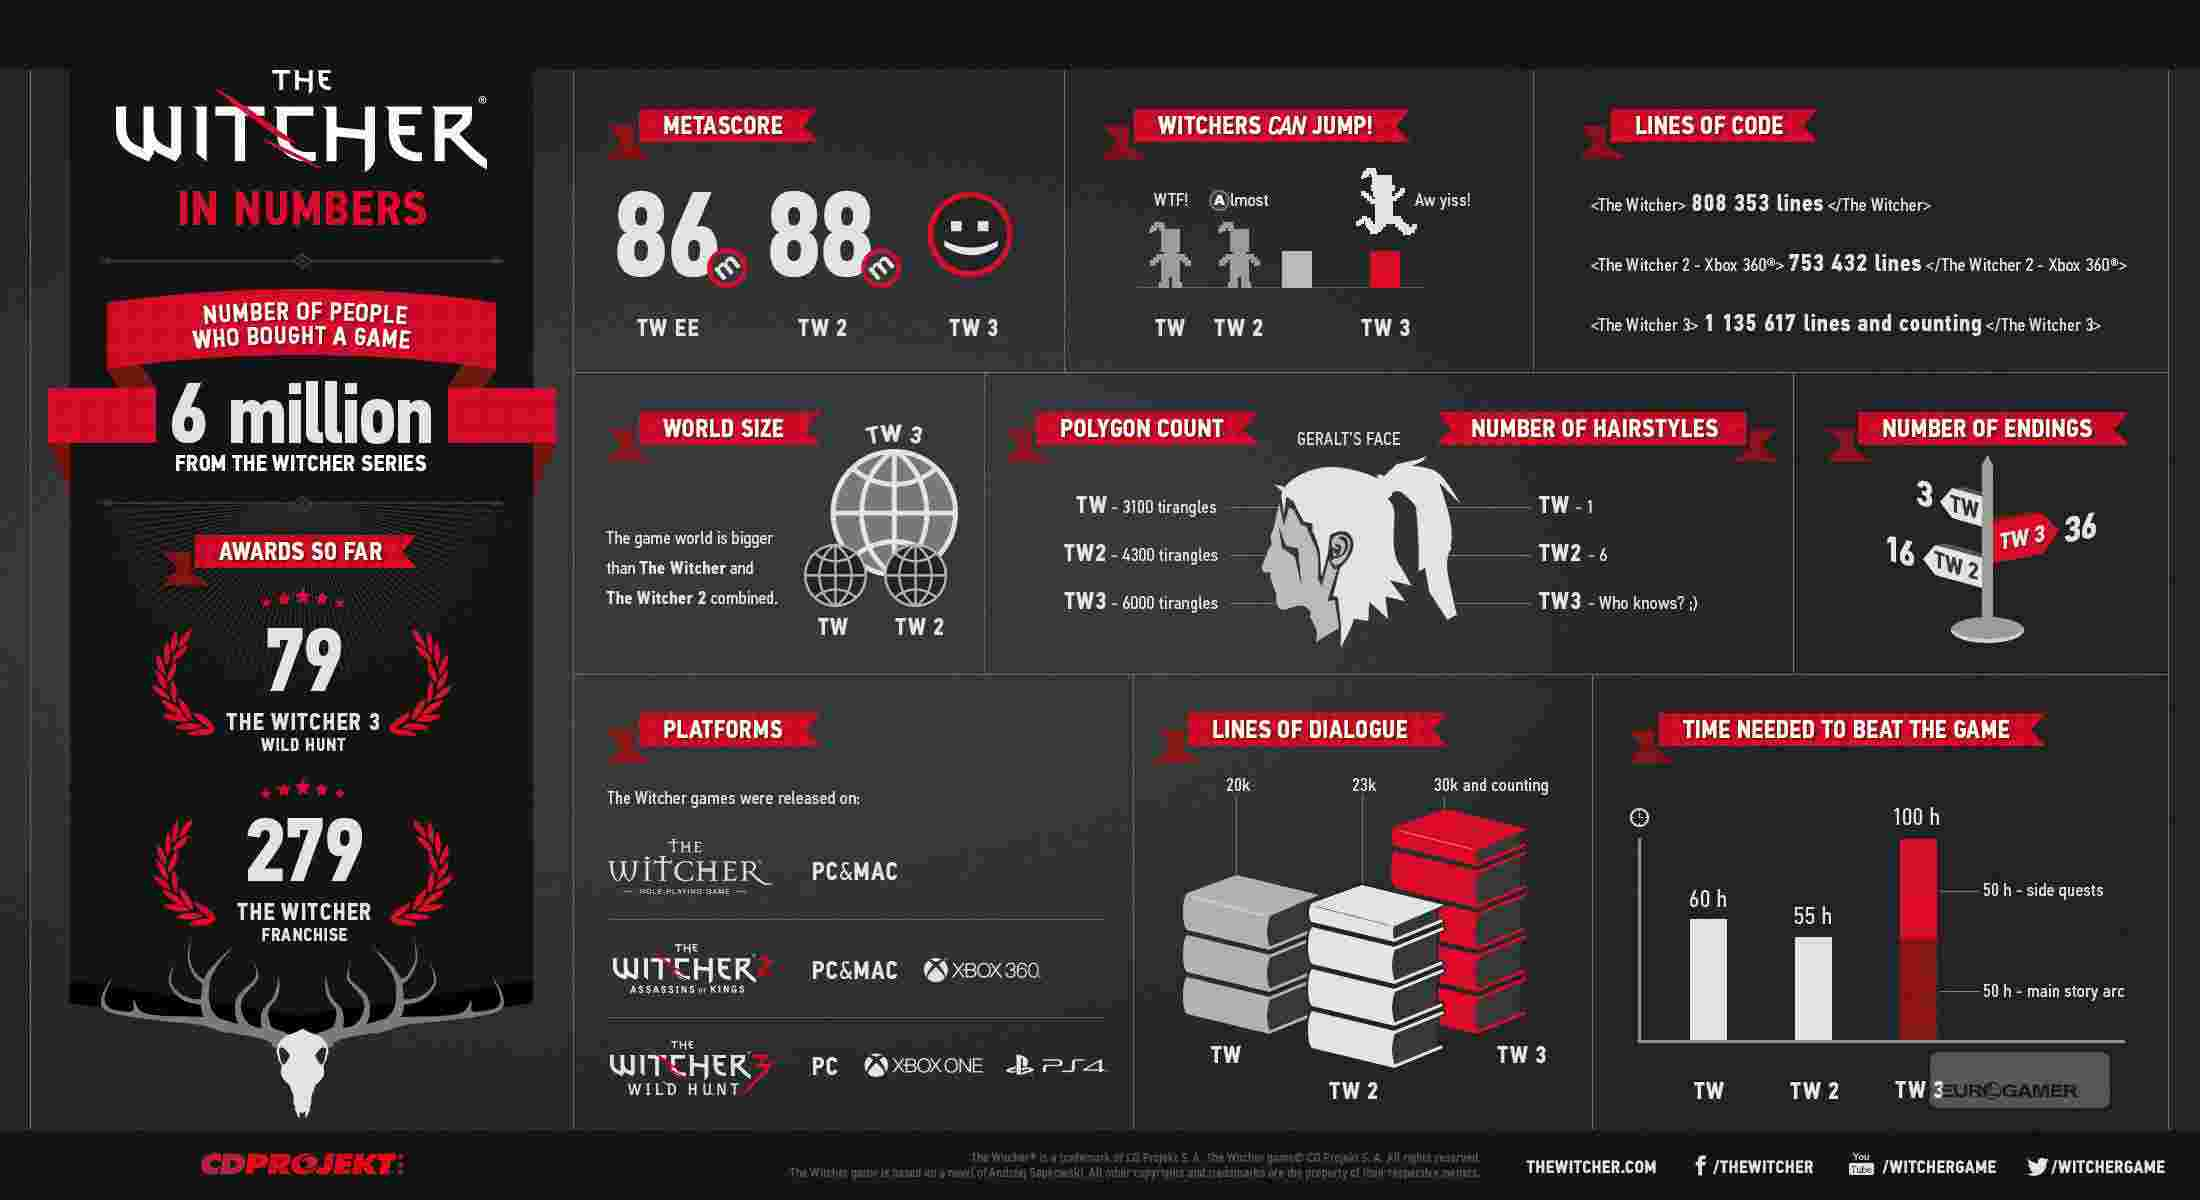 The_Witcher_in_numbers_info_EN.jpg